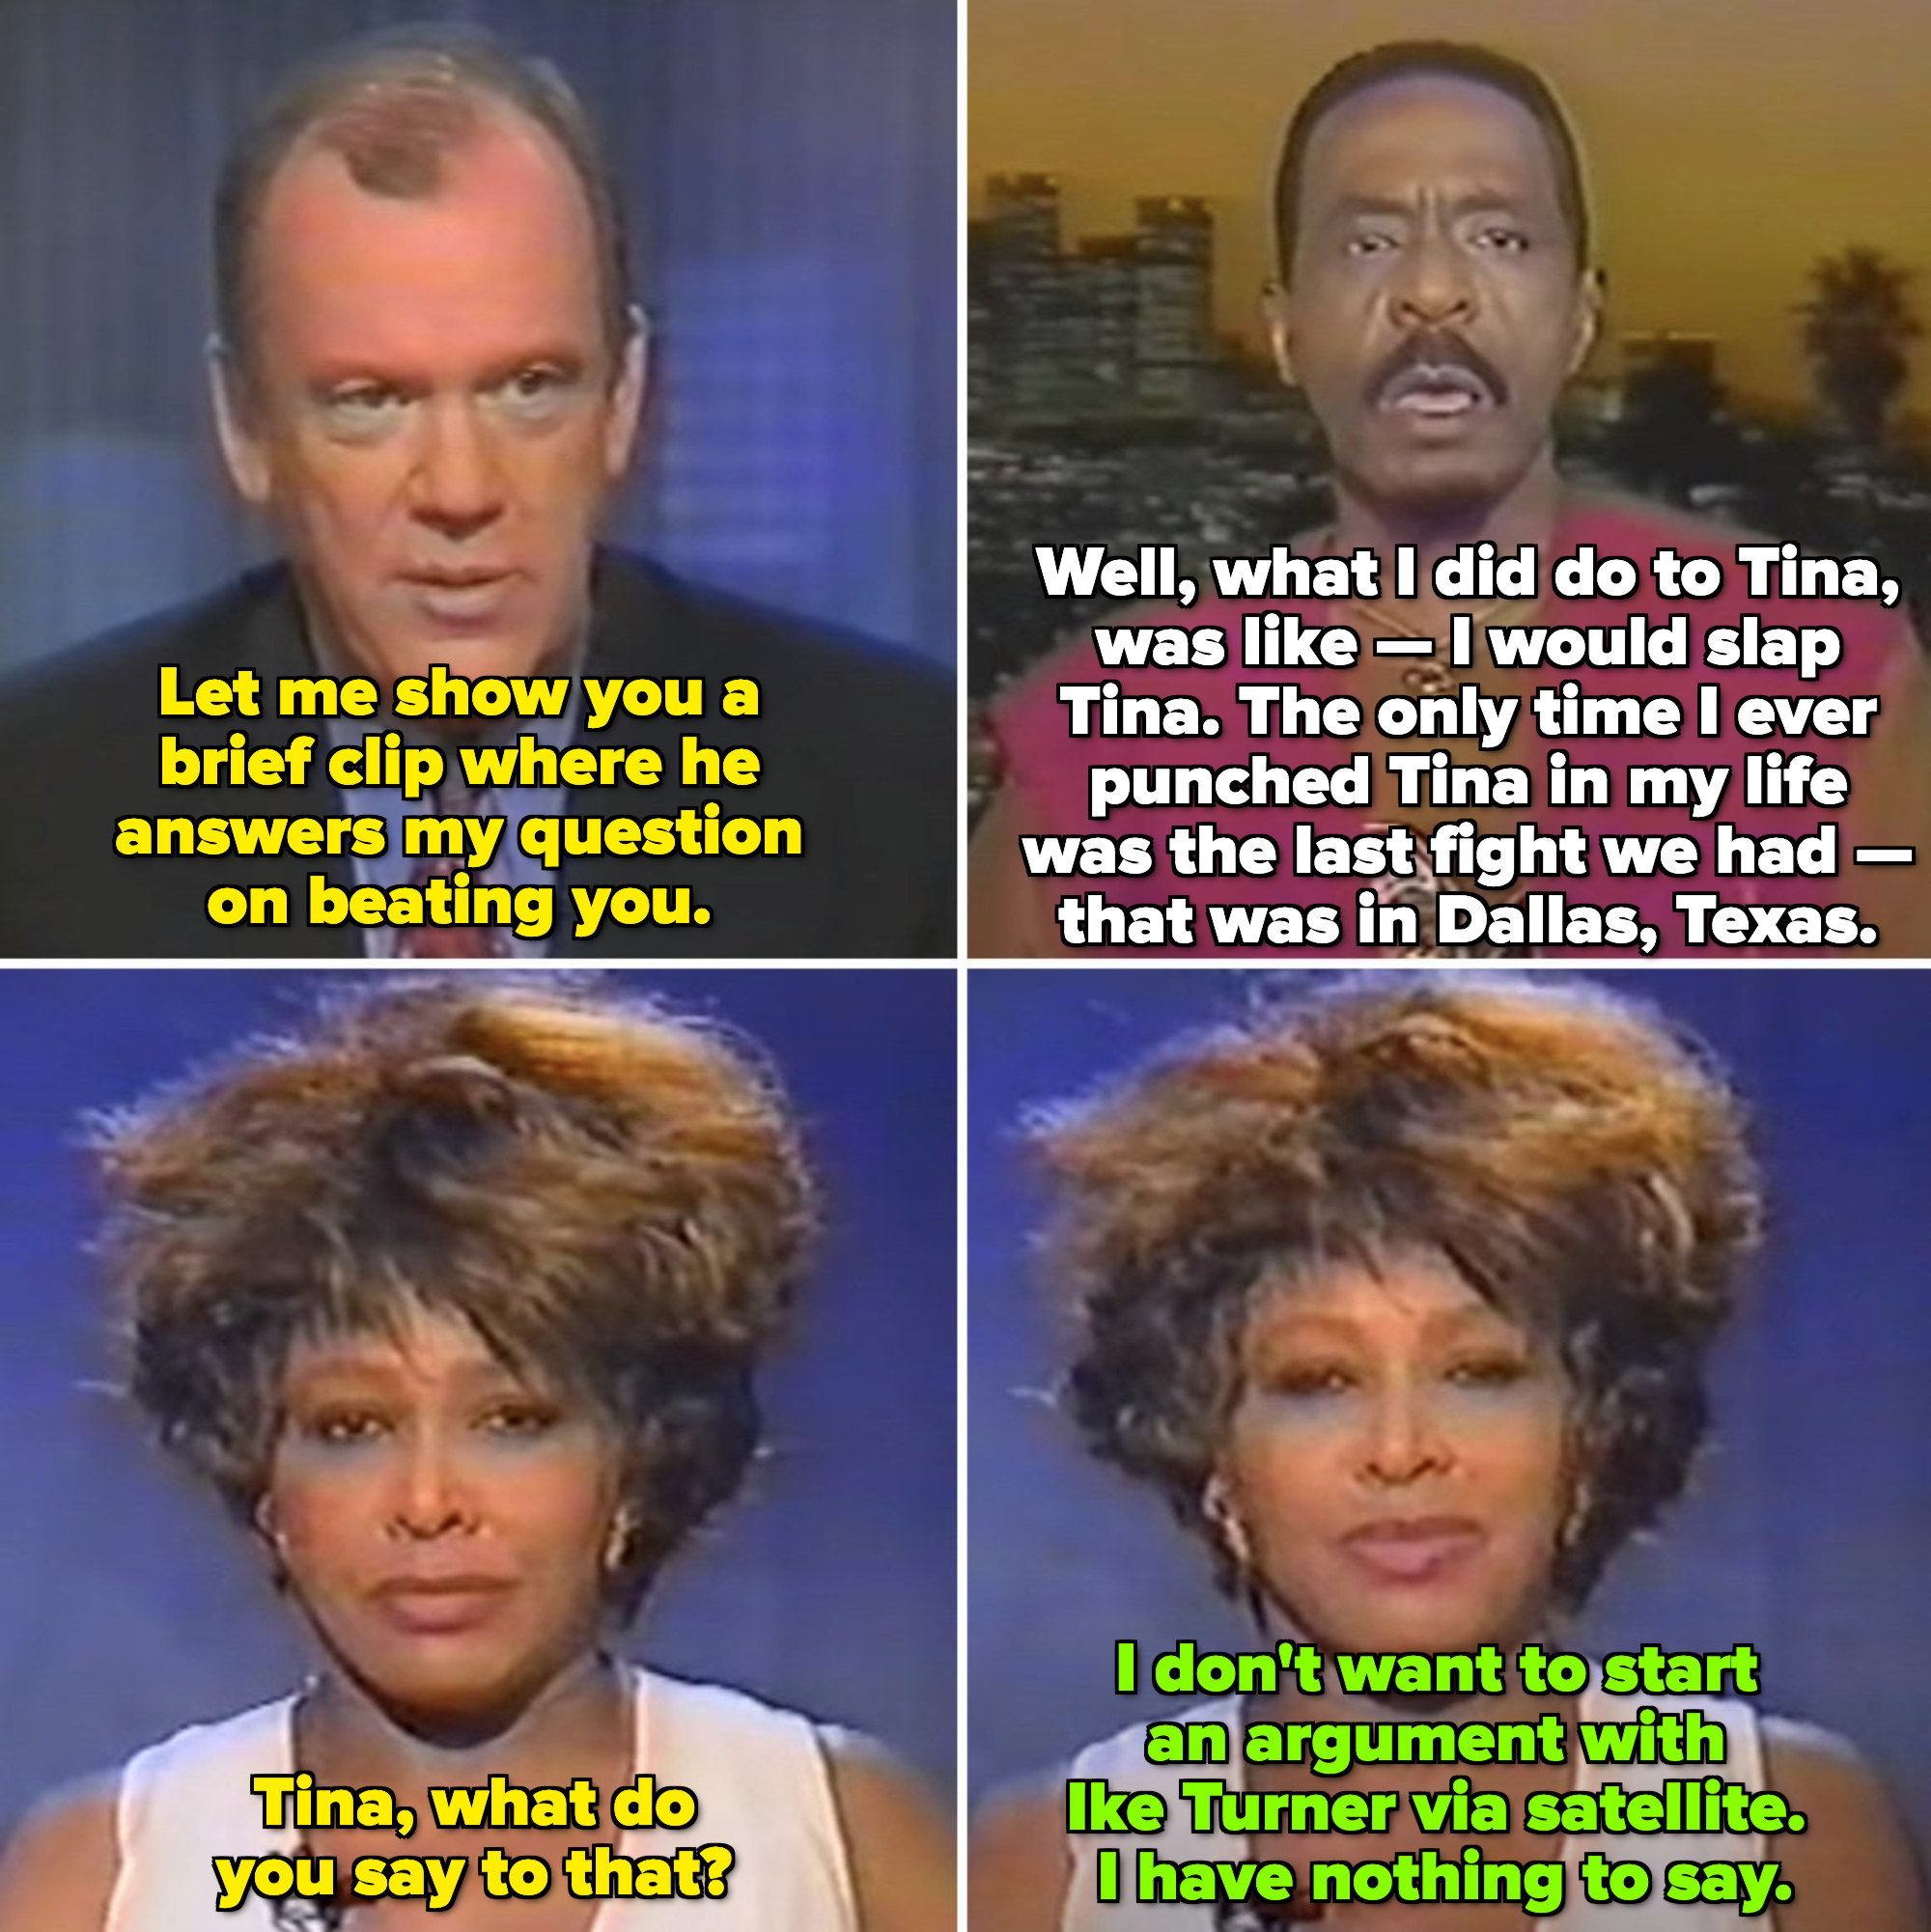 """Ike Turner saying: """"I would slap Tina,"""" and when asked by the News anchor if Tina had a comment, she said: """"I don't want to start an argument with Ike via satellite. I have nothing to say"""""""